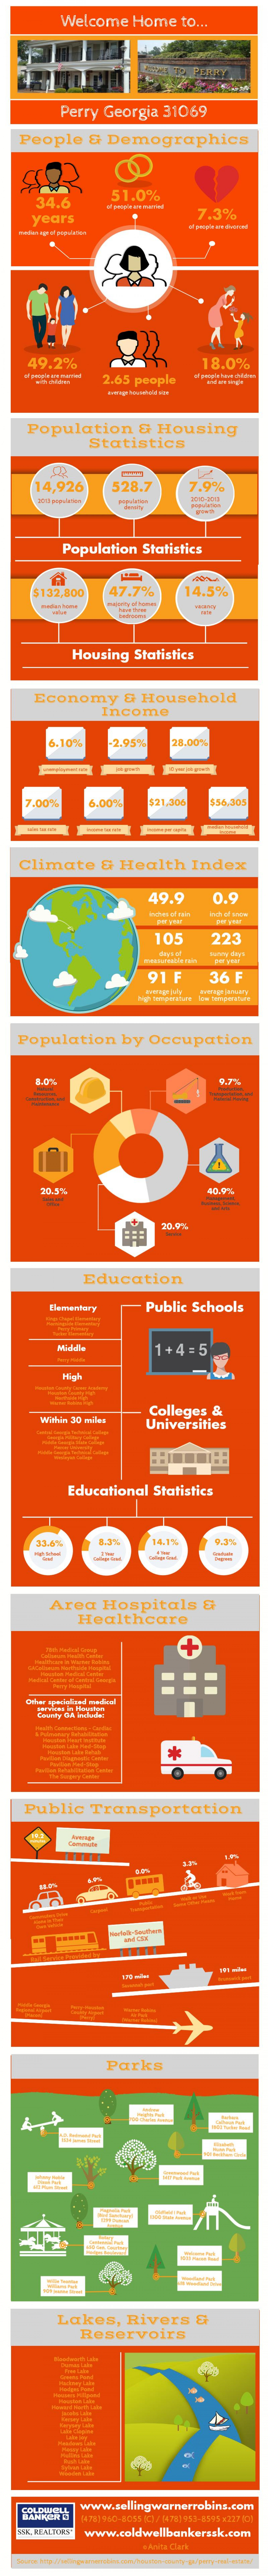 Perry GA 31069 City Information Infographic